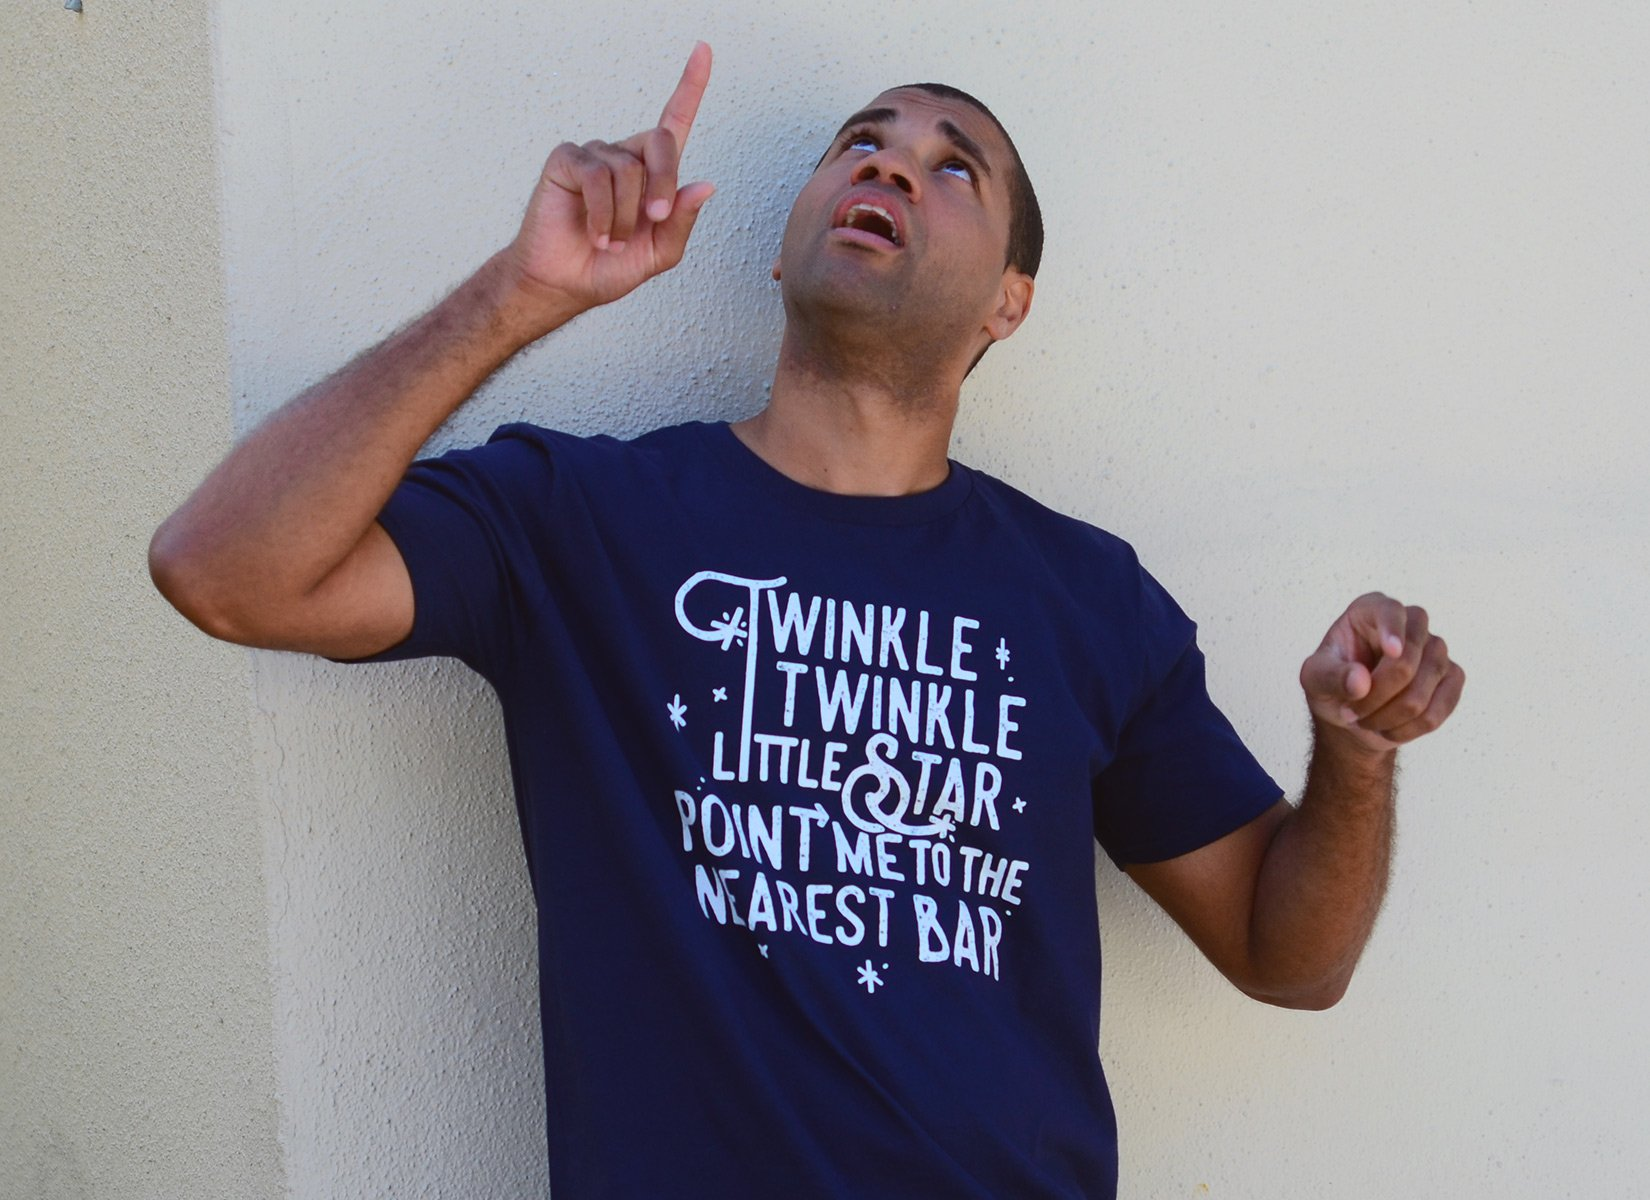 Point Me To The Nearest Bar on Mens T-Shirt